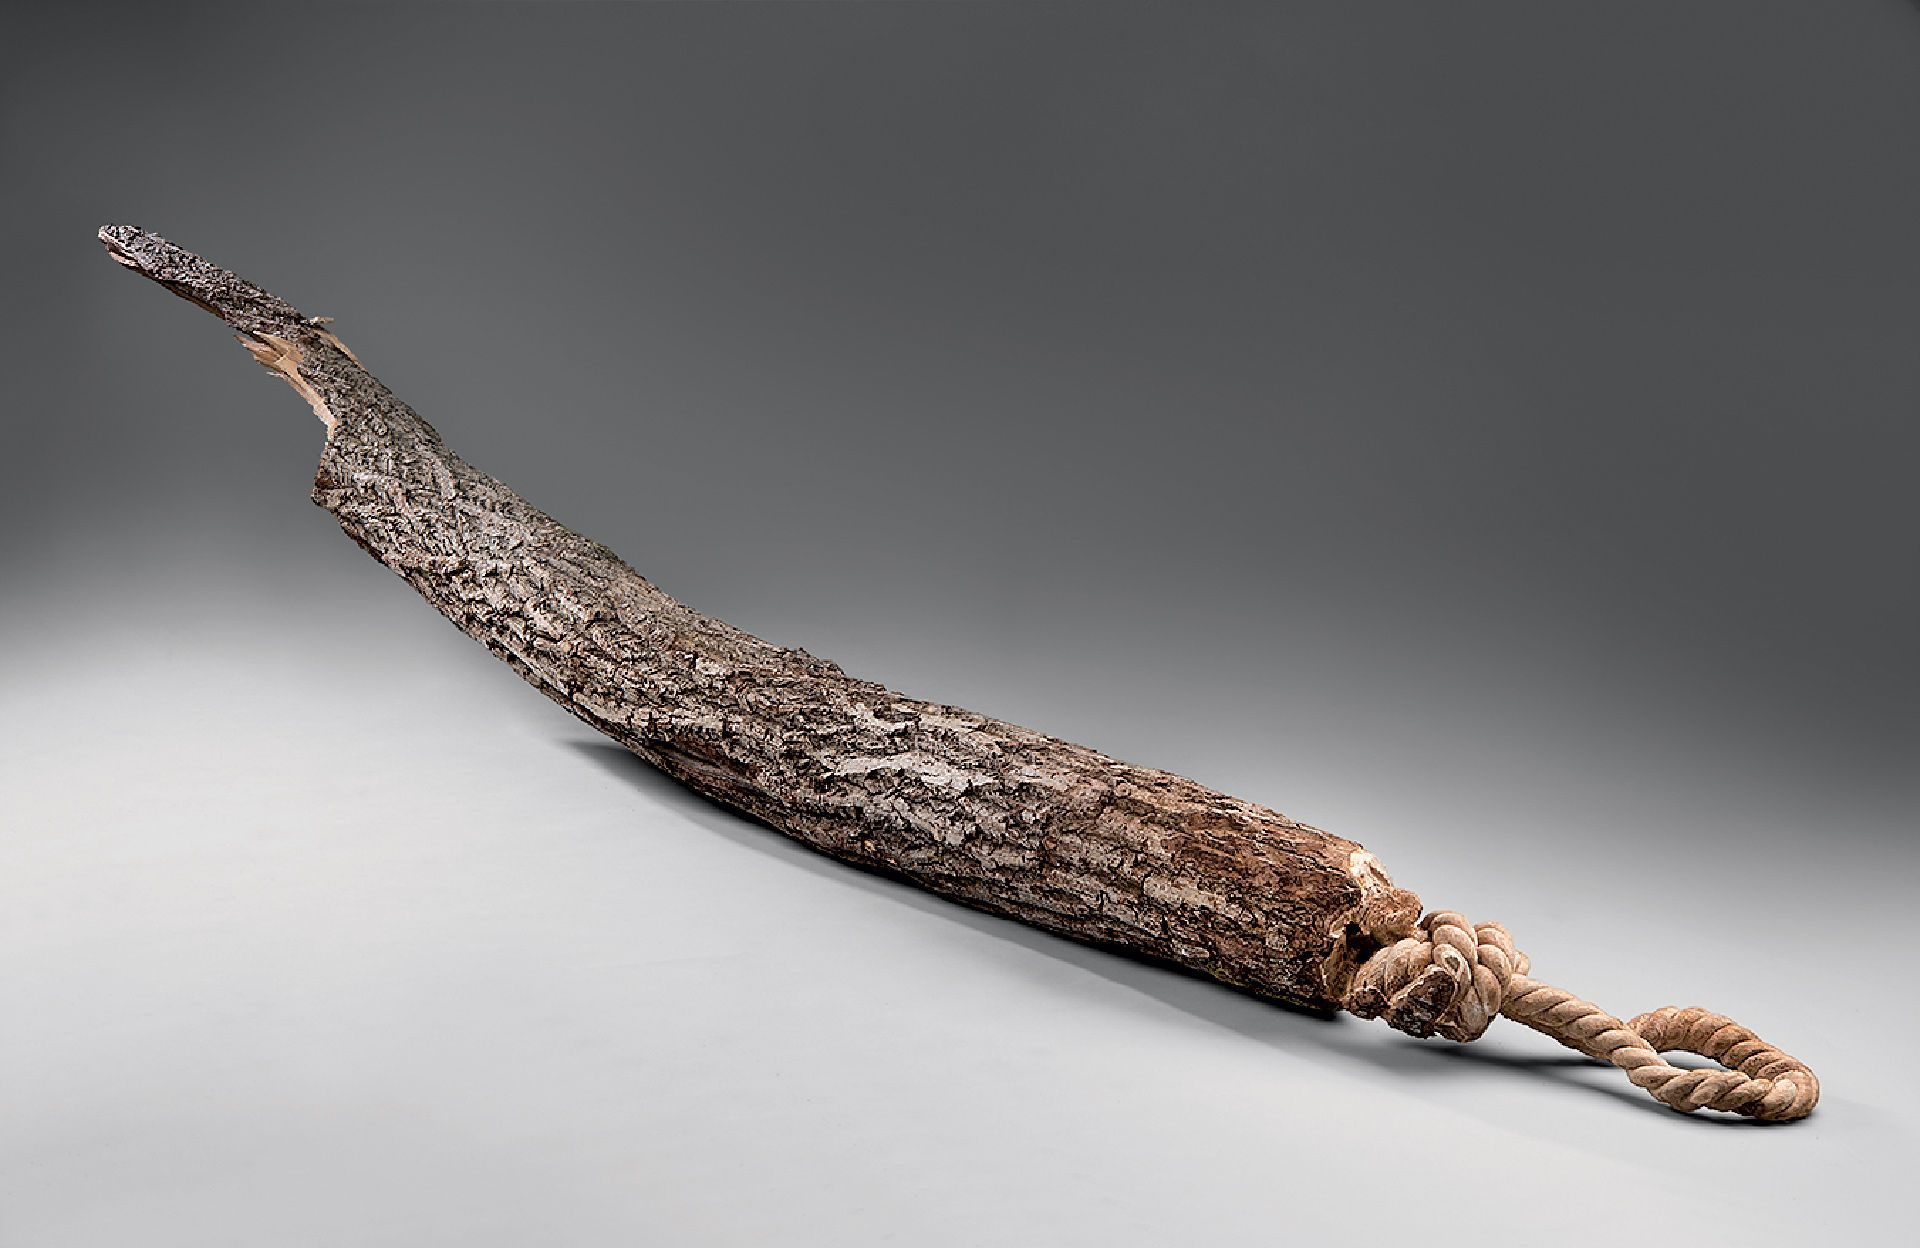 Maskull Lasserre (born in 1978), Bough, 2012, carved butternut tree bough, 320 x 28 x 28 cm. MMFA, purchase, the Canada Council for the Arts' Acquisition Assistance Program and Dr. Gurjinder P. Sall Fund. Photo MMFA, Christine Guest